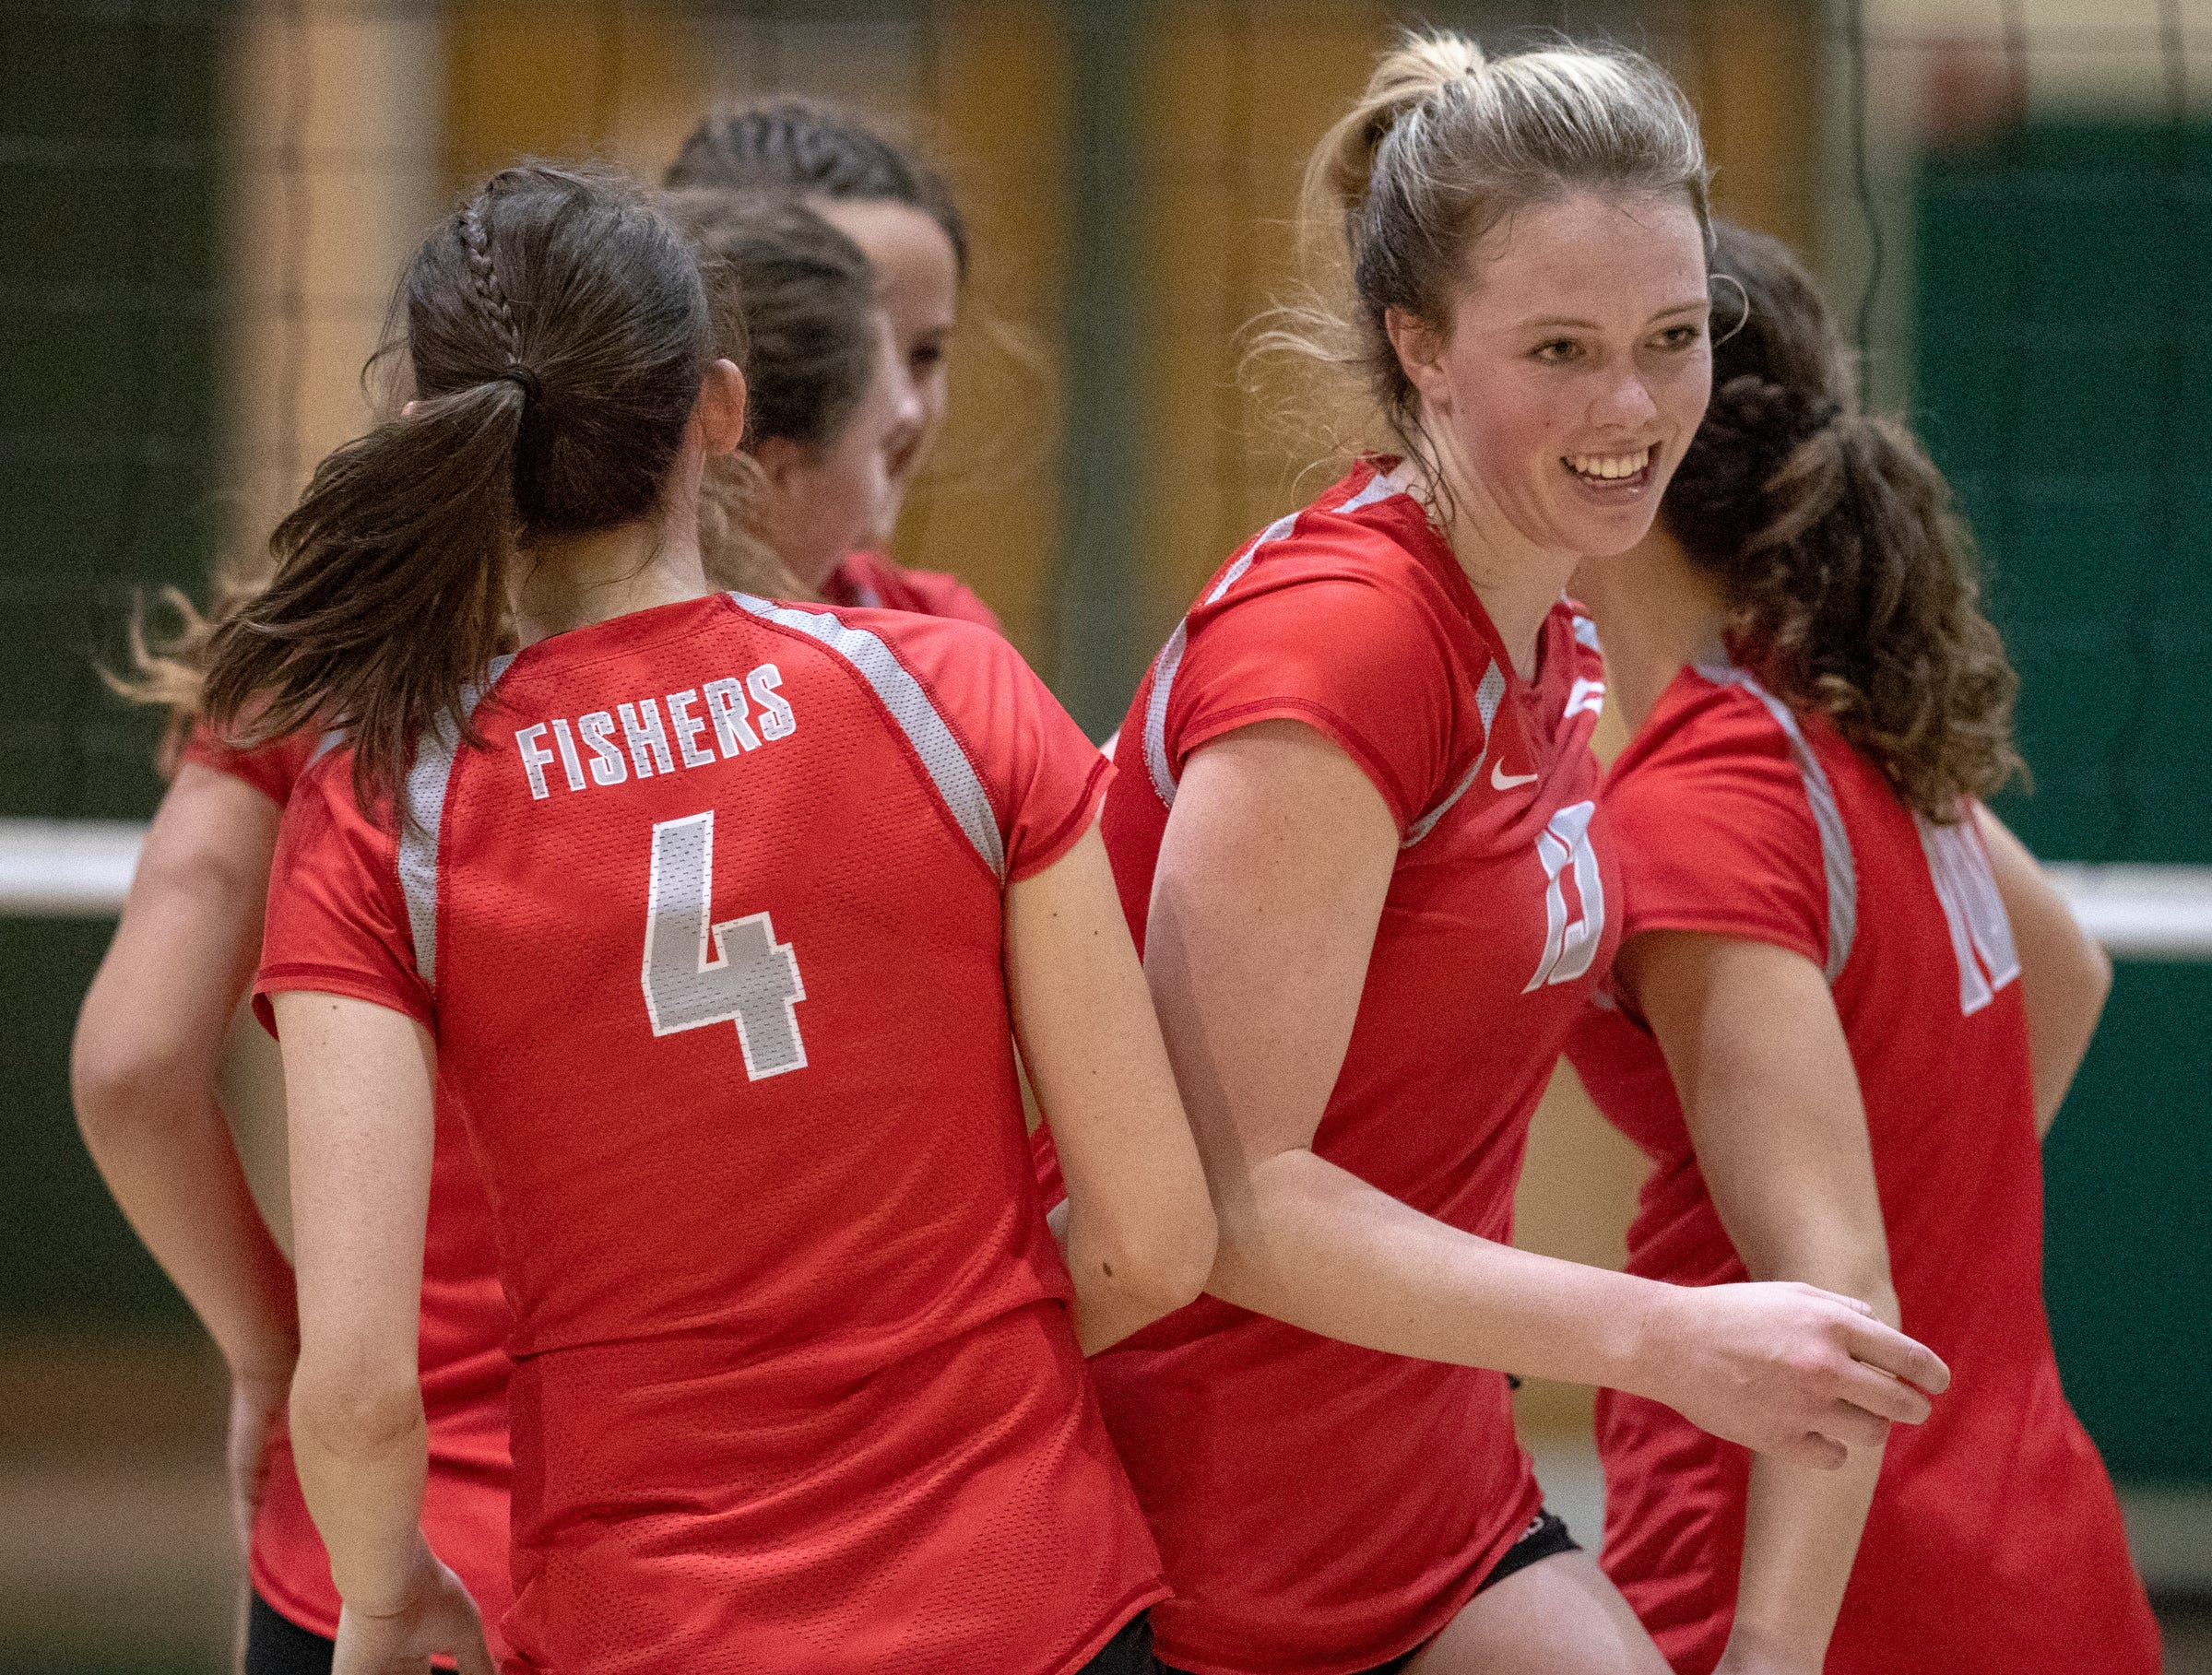 Rose Duffy of Fishers High School is all smiles during a huddle as they play Hamilton Southeastern High School, winning in three straight sets in the first round of the volleyball sectional at Westfield High School, Westfield, Thursday, Oct. 11, 2018. The win matches them up with Westfield High School for a game on Saturday morning at 11a.m.